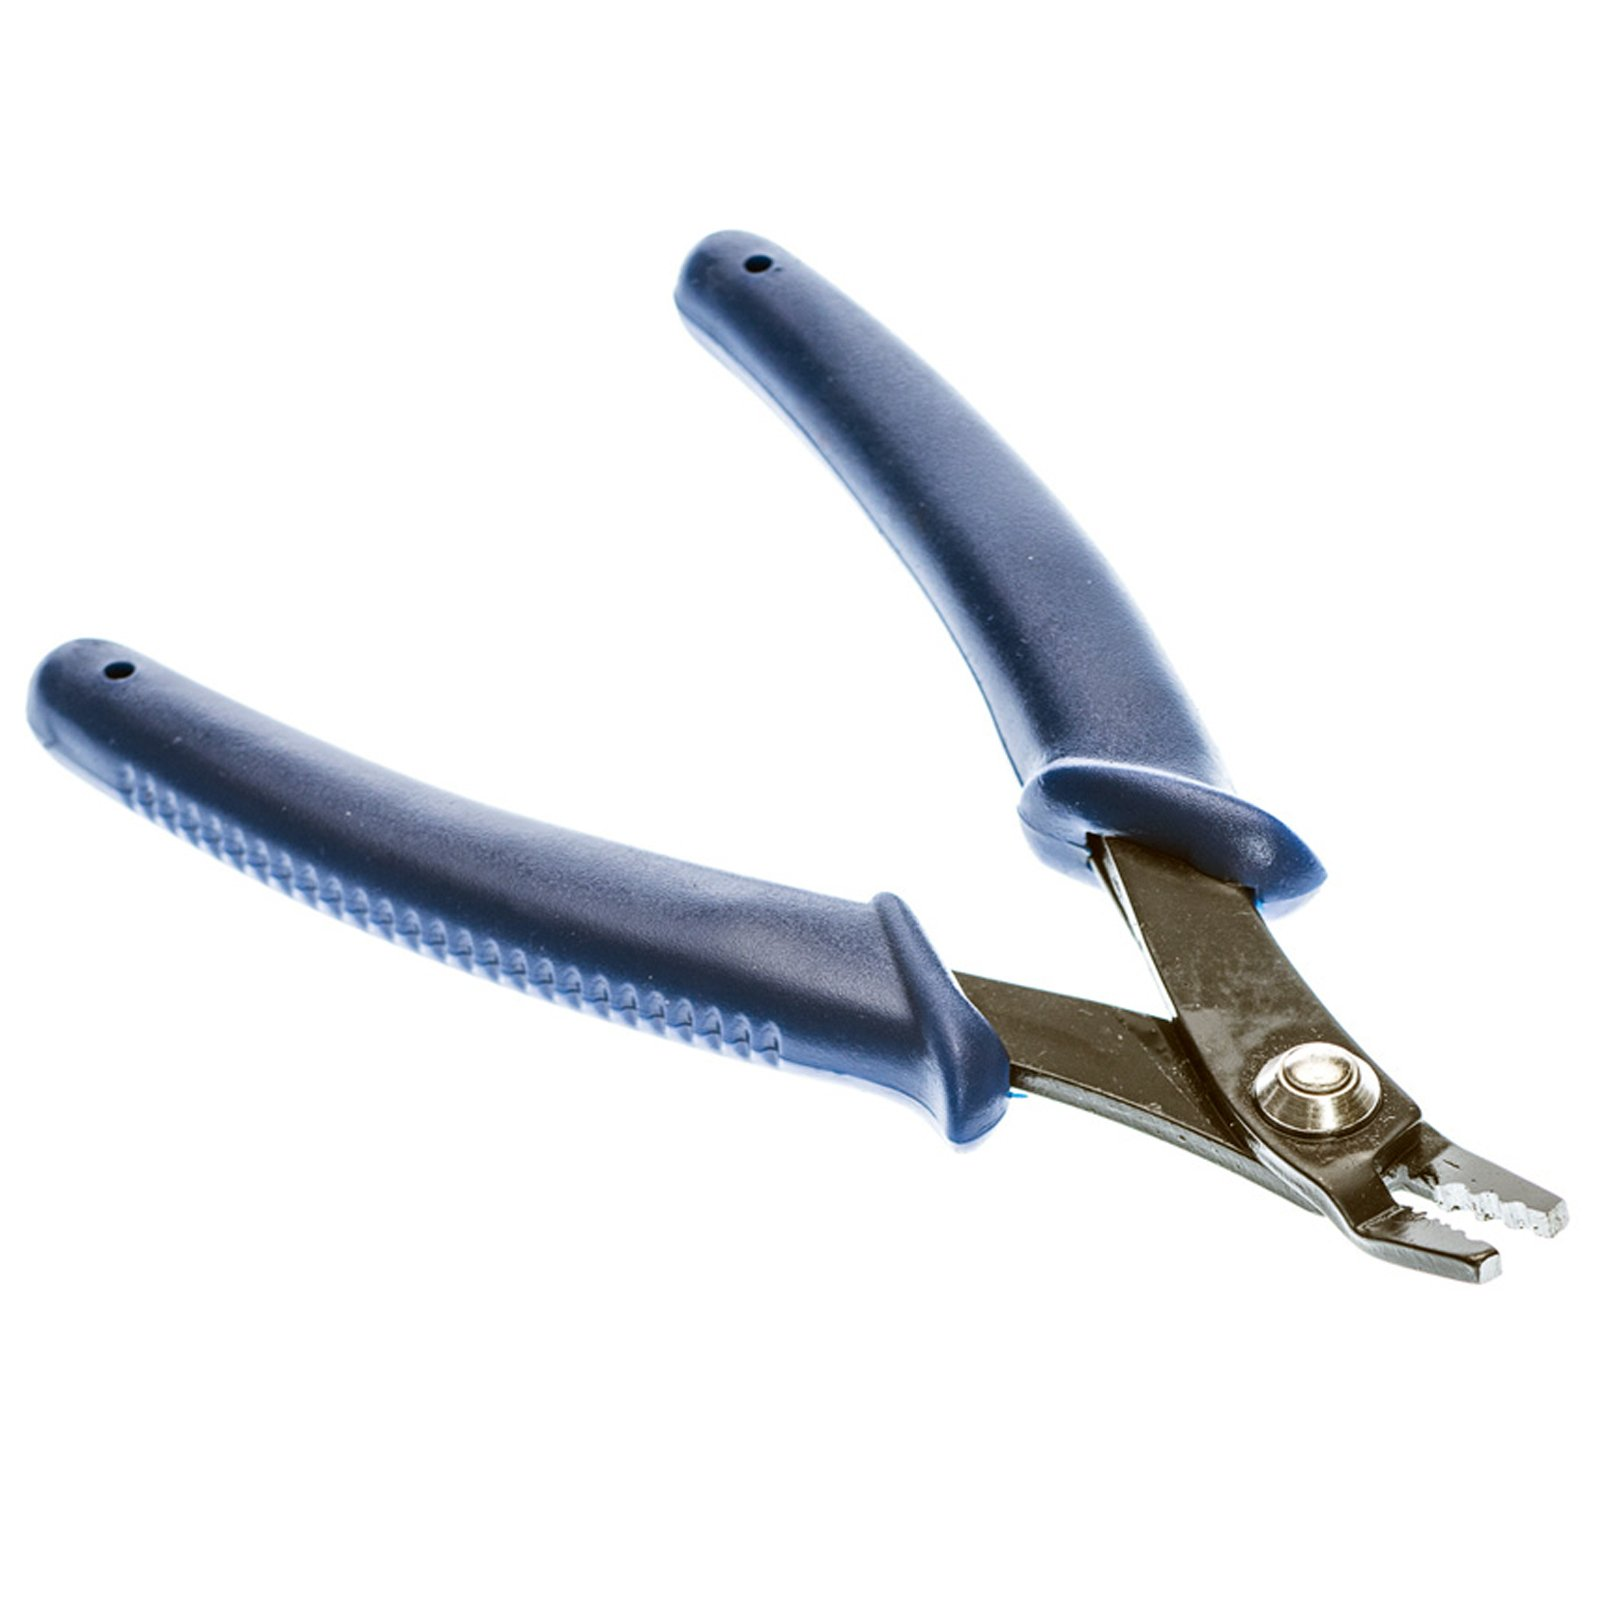 Universal Hobby Mini Bead Crimping Pliers Carbon Steel Jewelry Making Tool